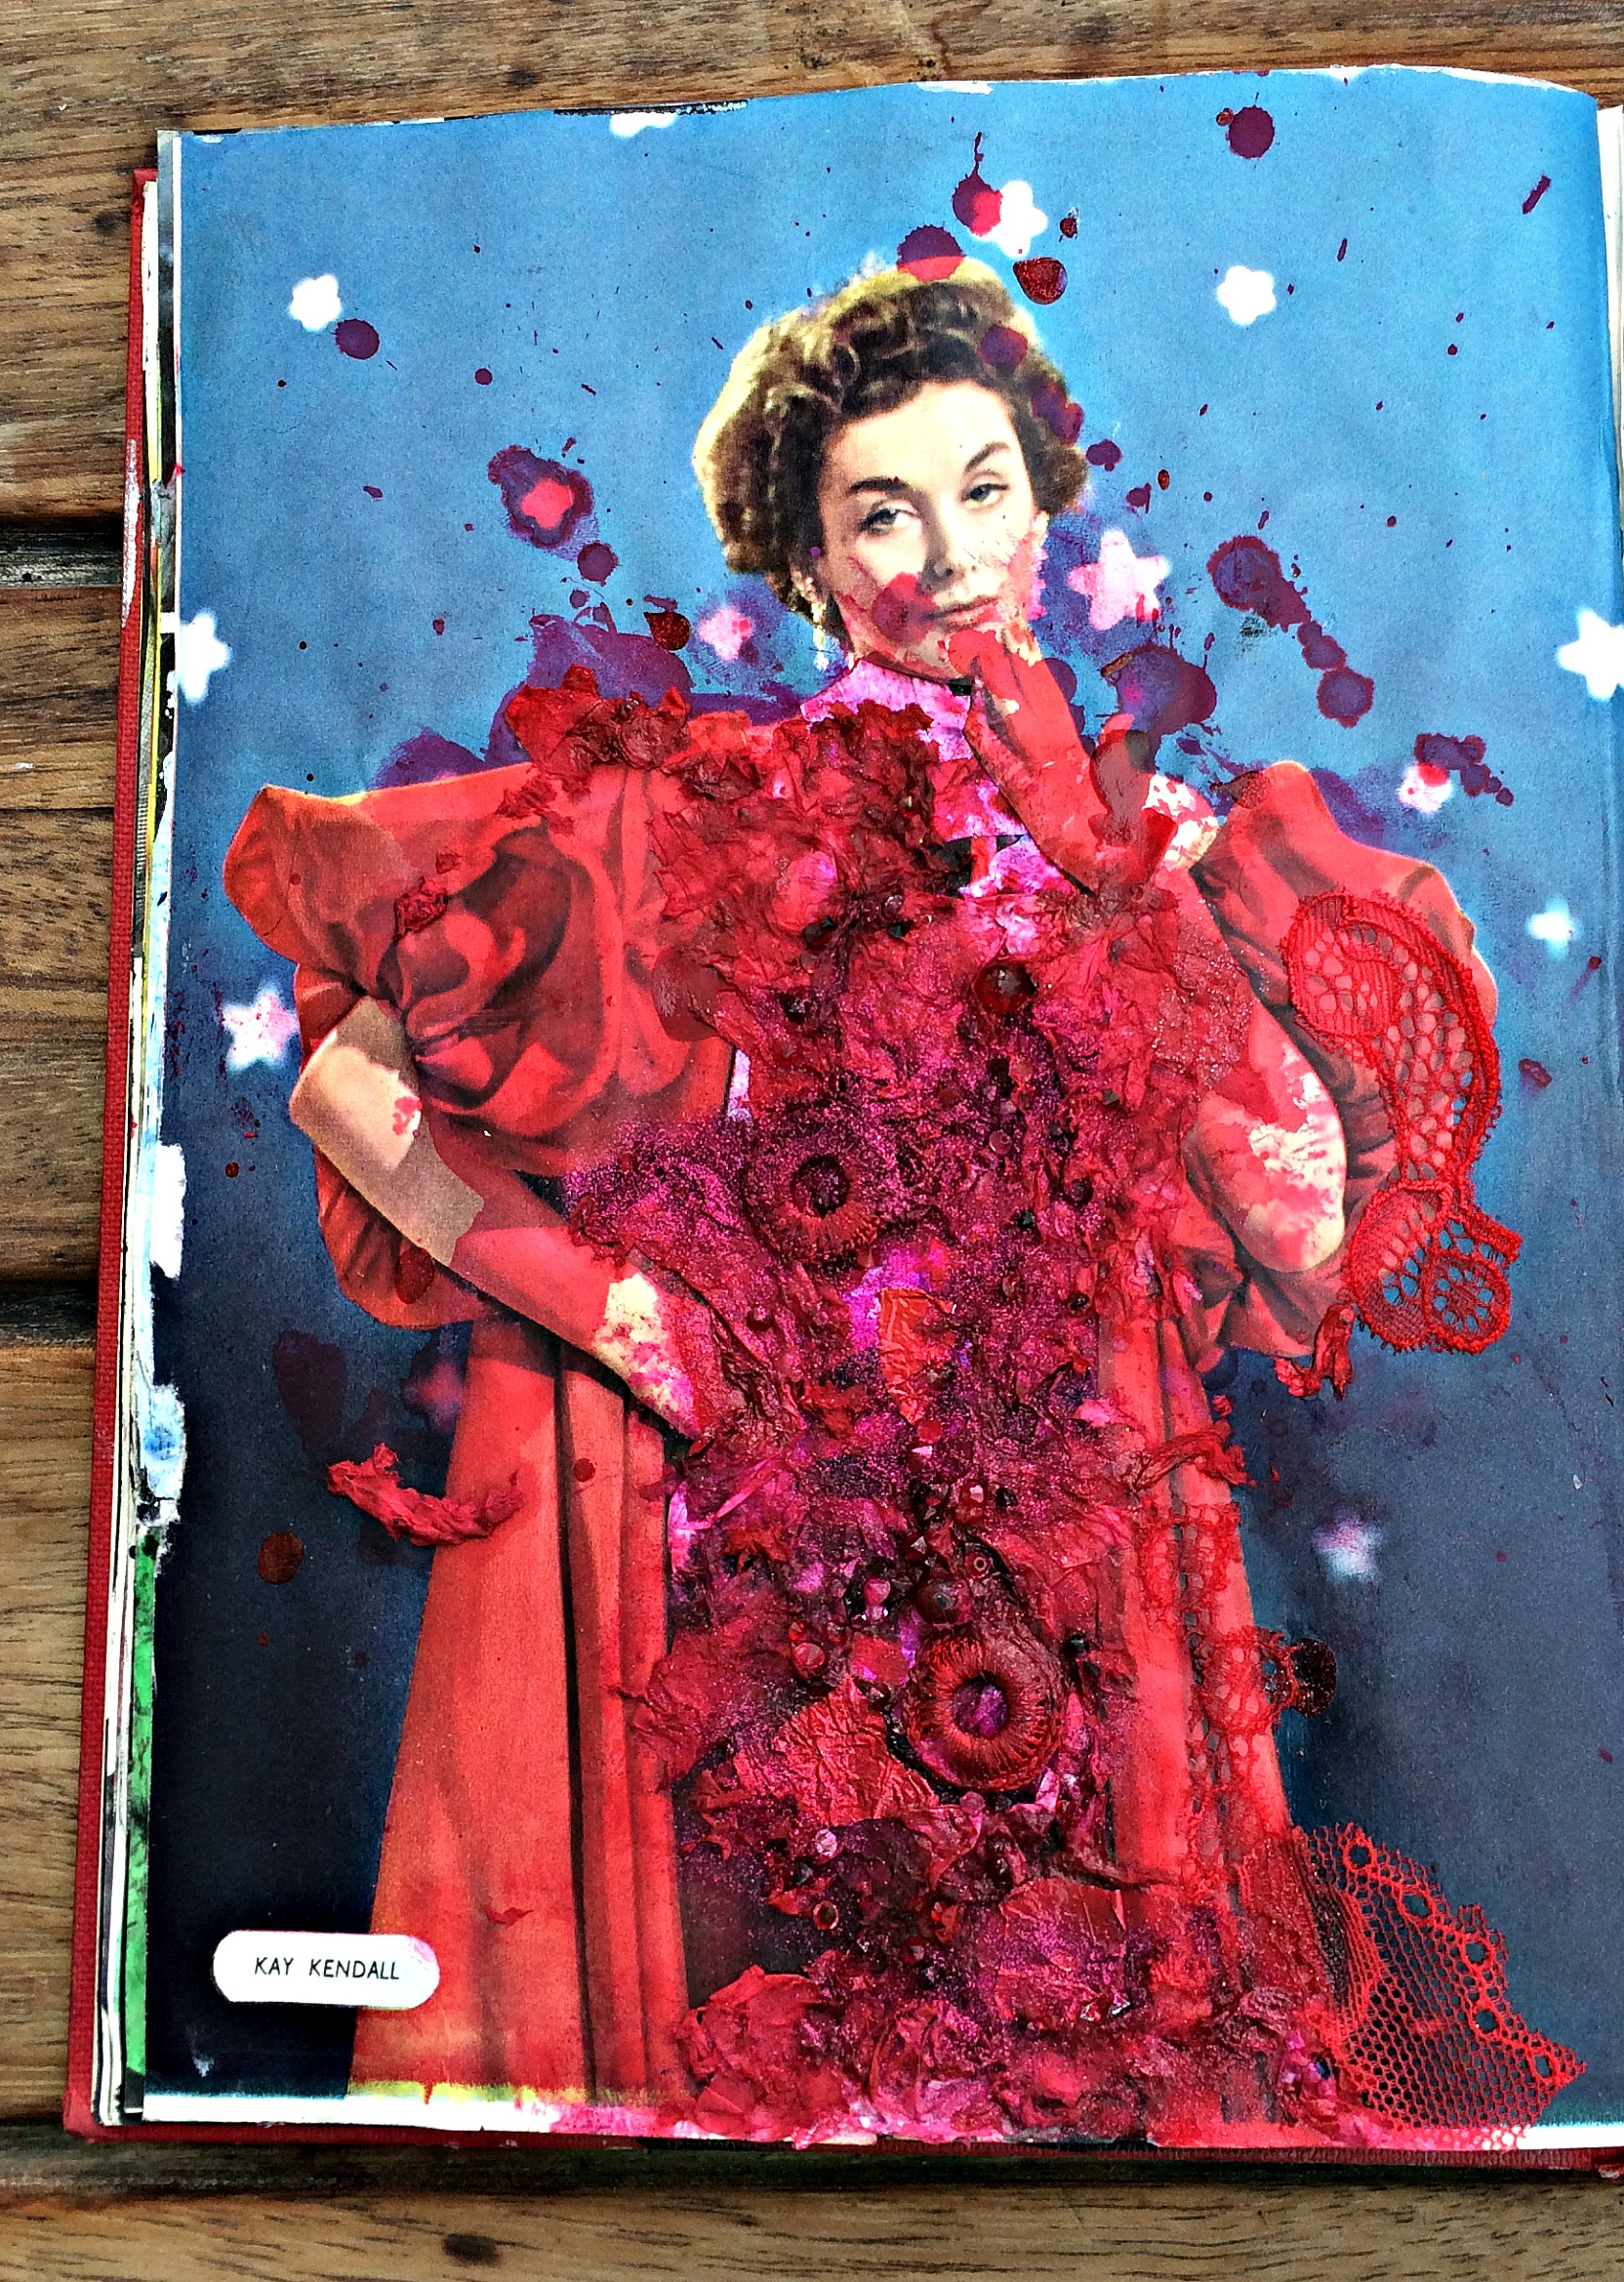 Altered Book (Preview 1955): seed burst in paint, collage, glitter